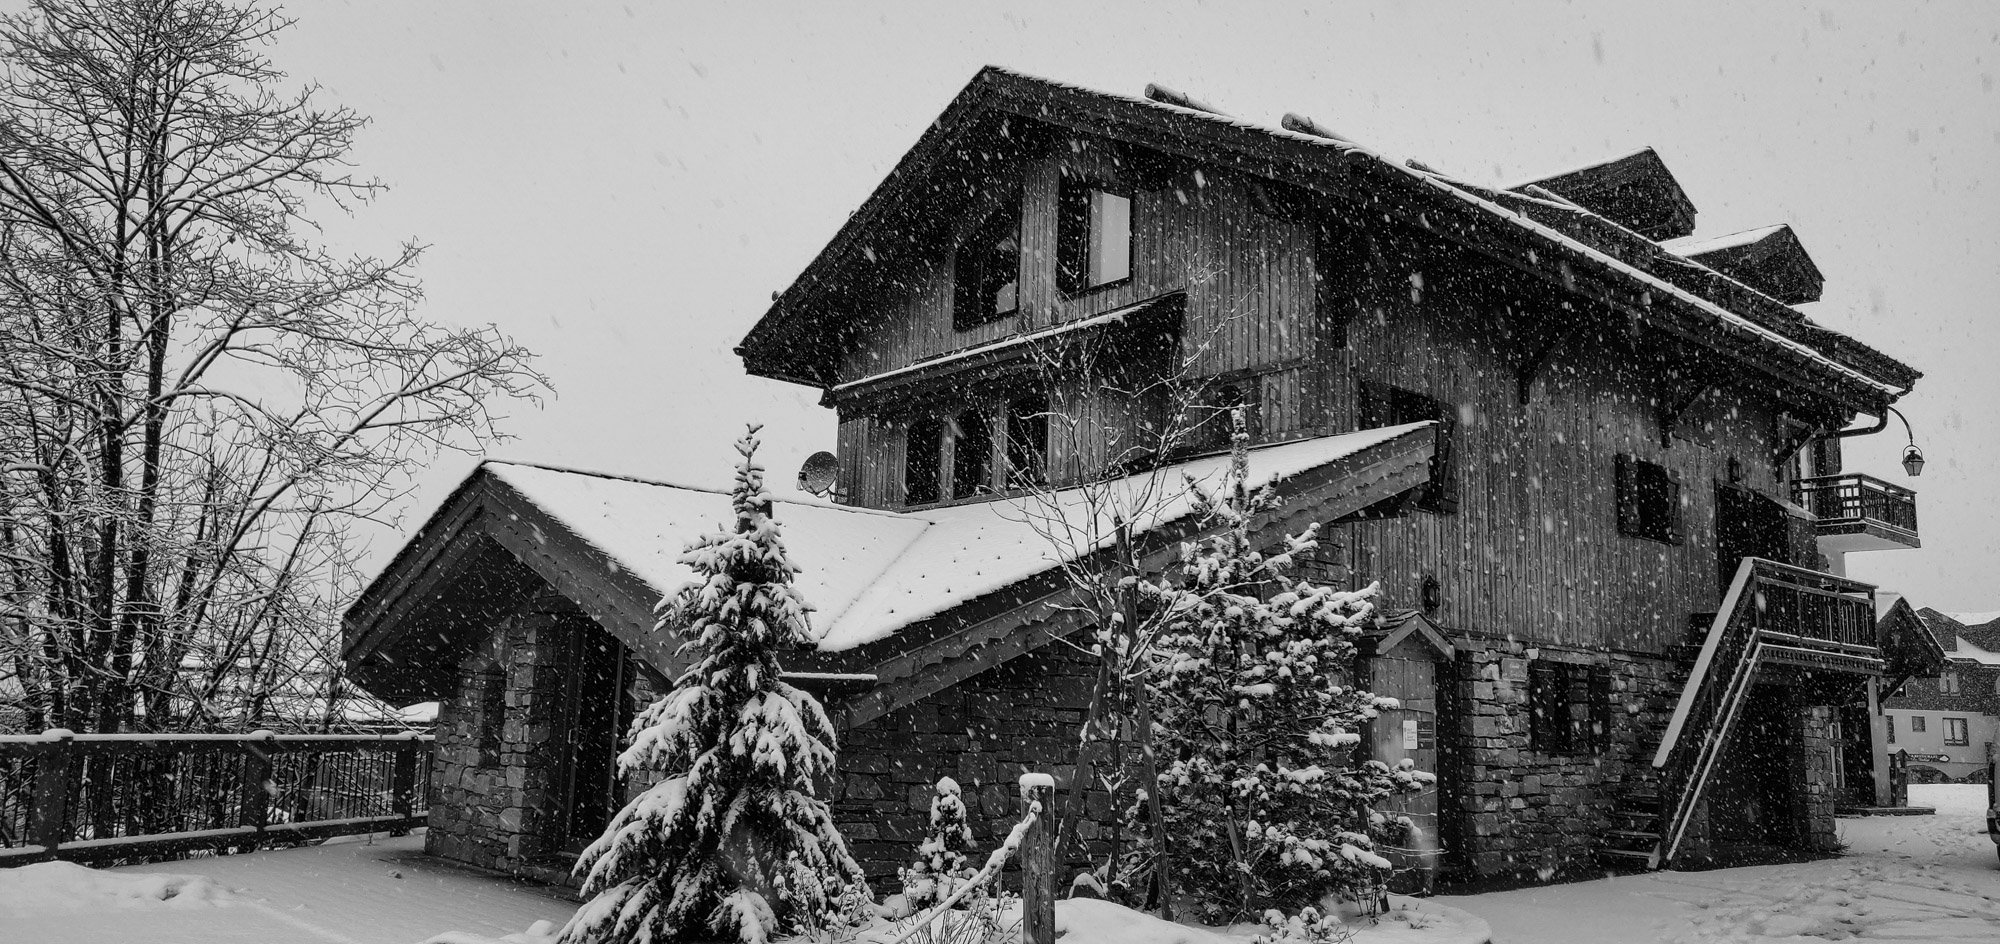 Luxury chalet 'St Pères' during an early season snowfall